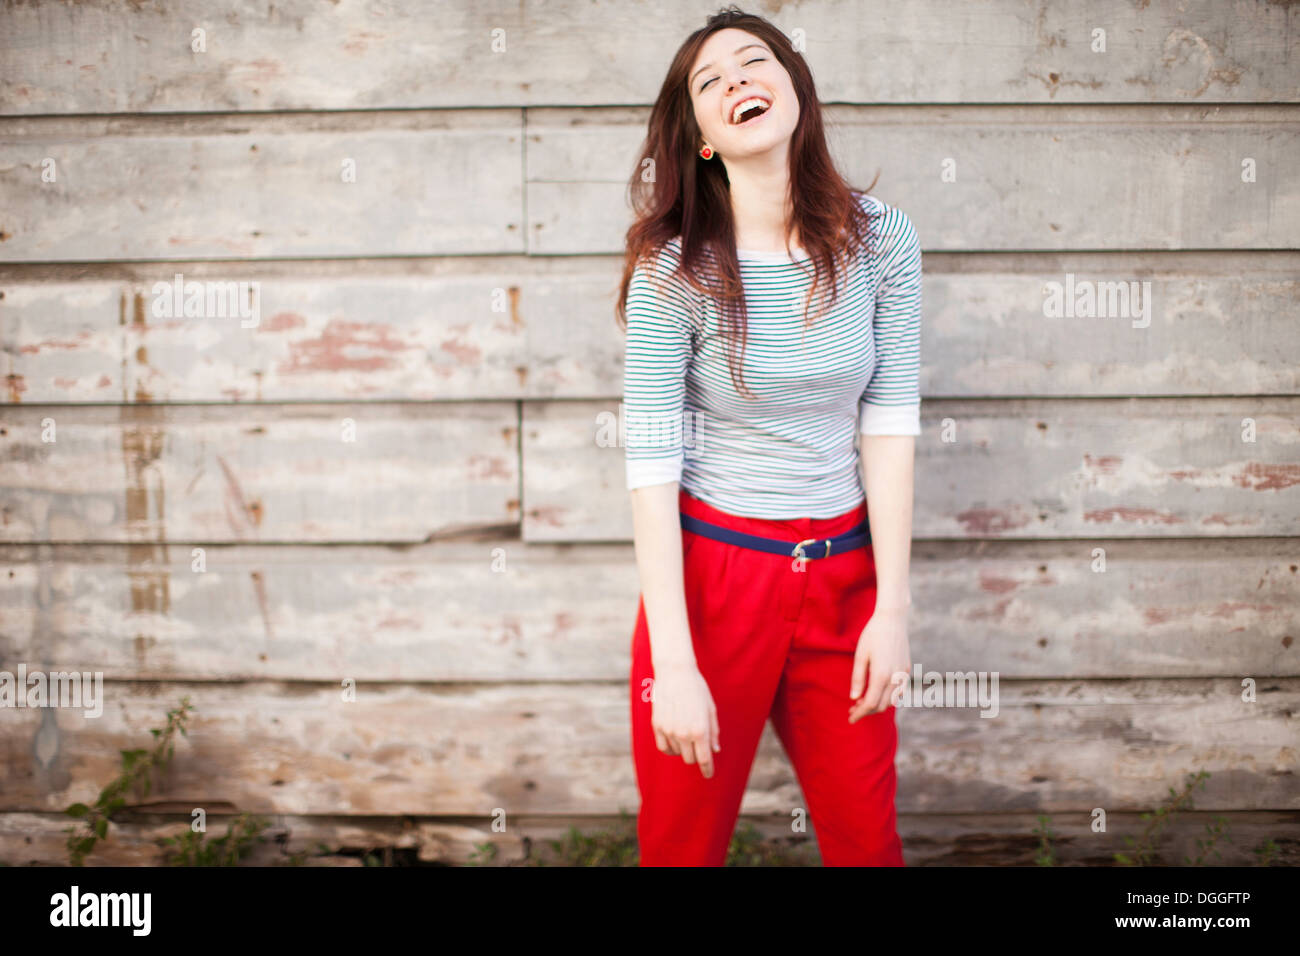 Portrait of young woman laughing Photo Stock